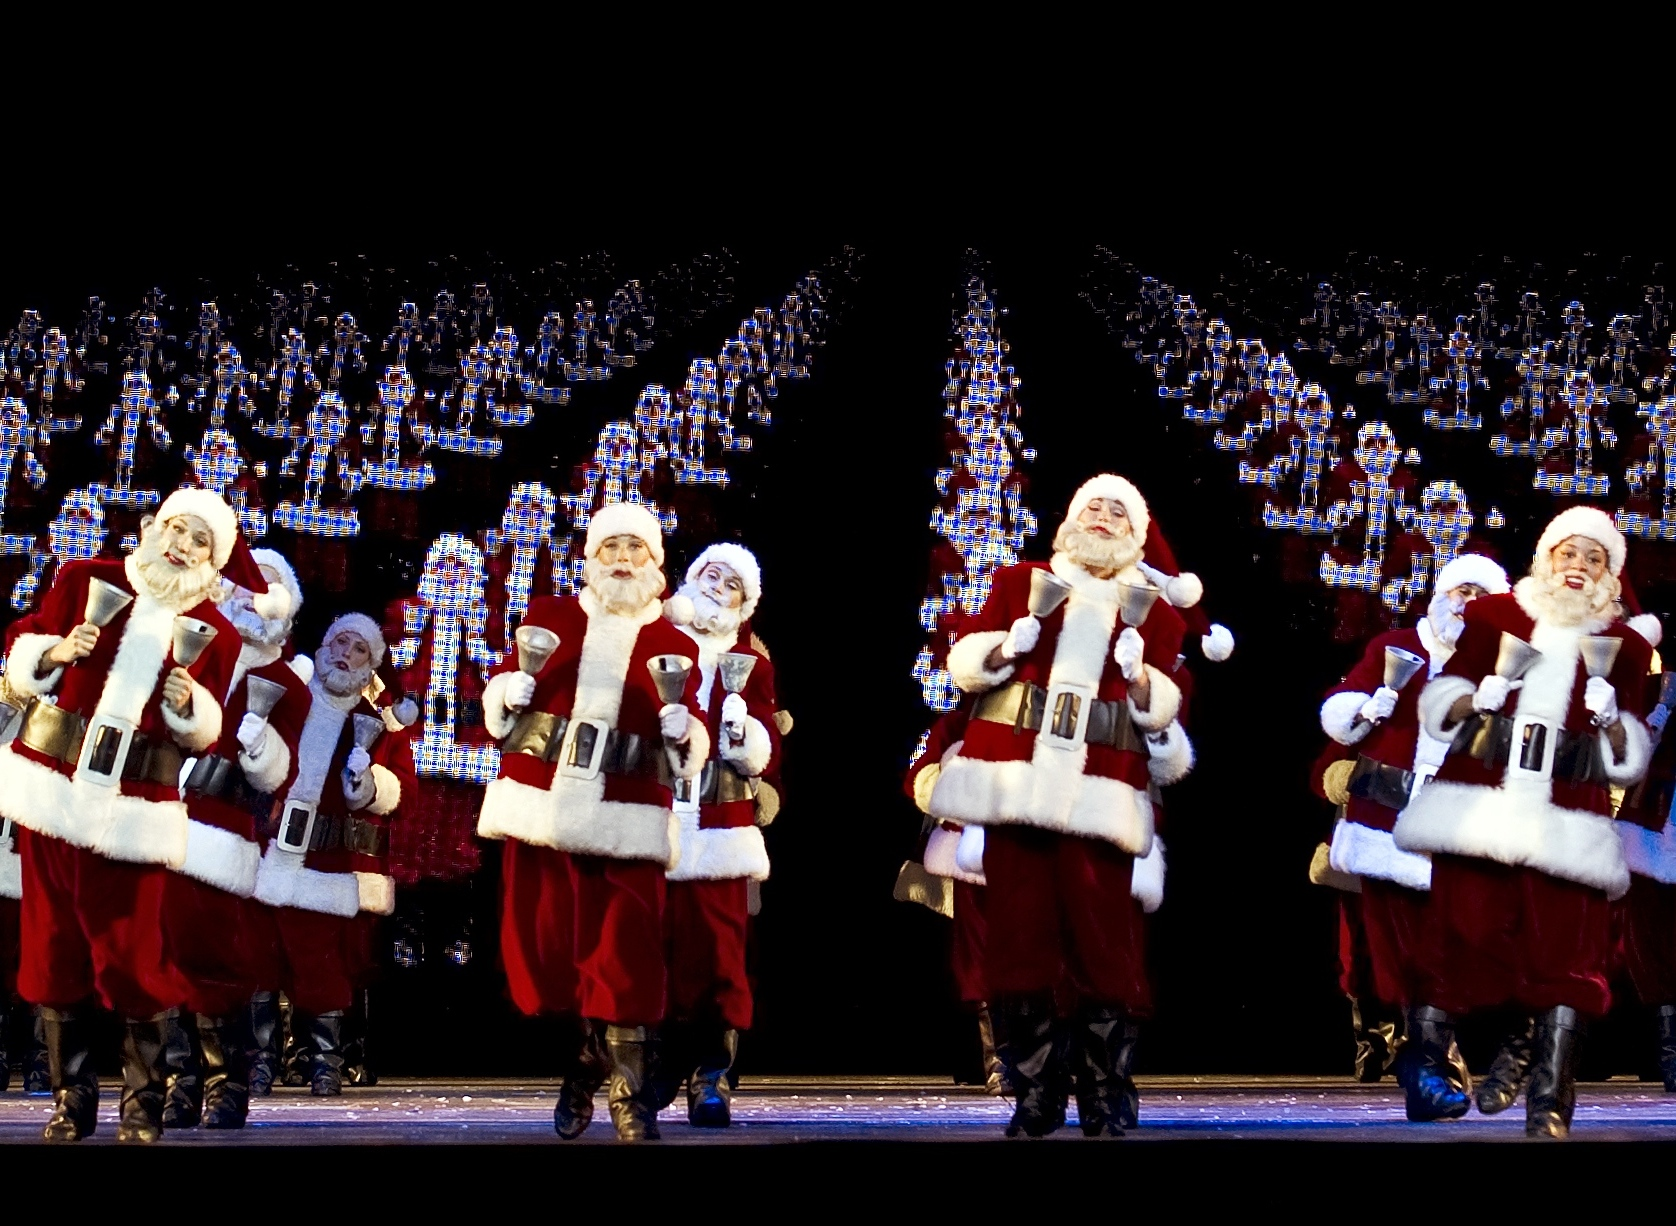 photo courtesy of the rockettes - Rockettes Christmas Show